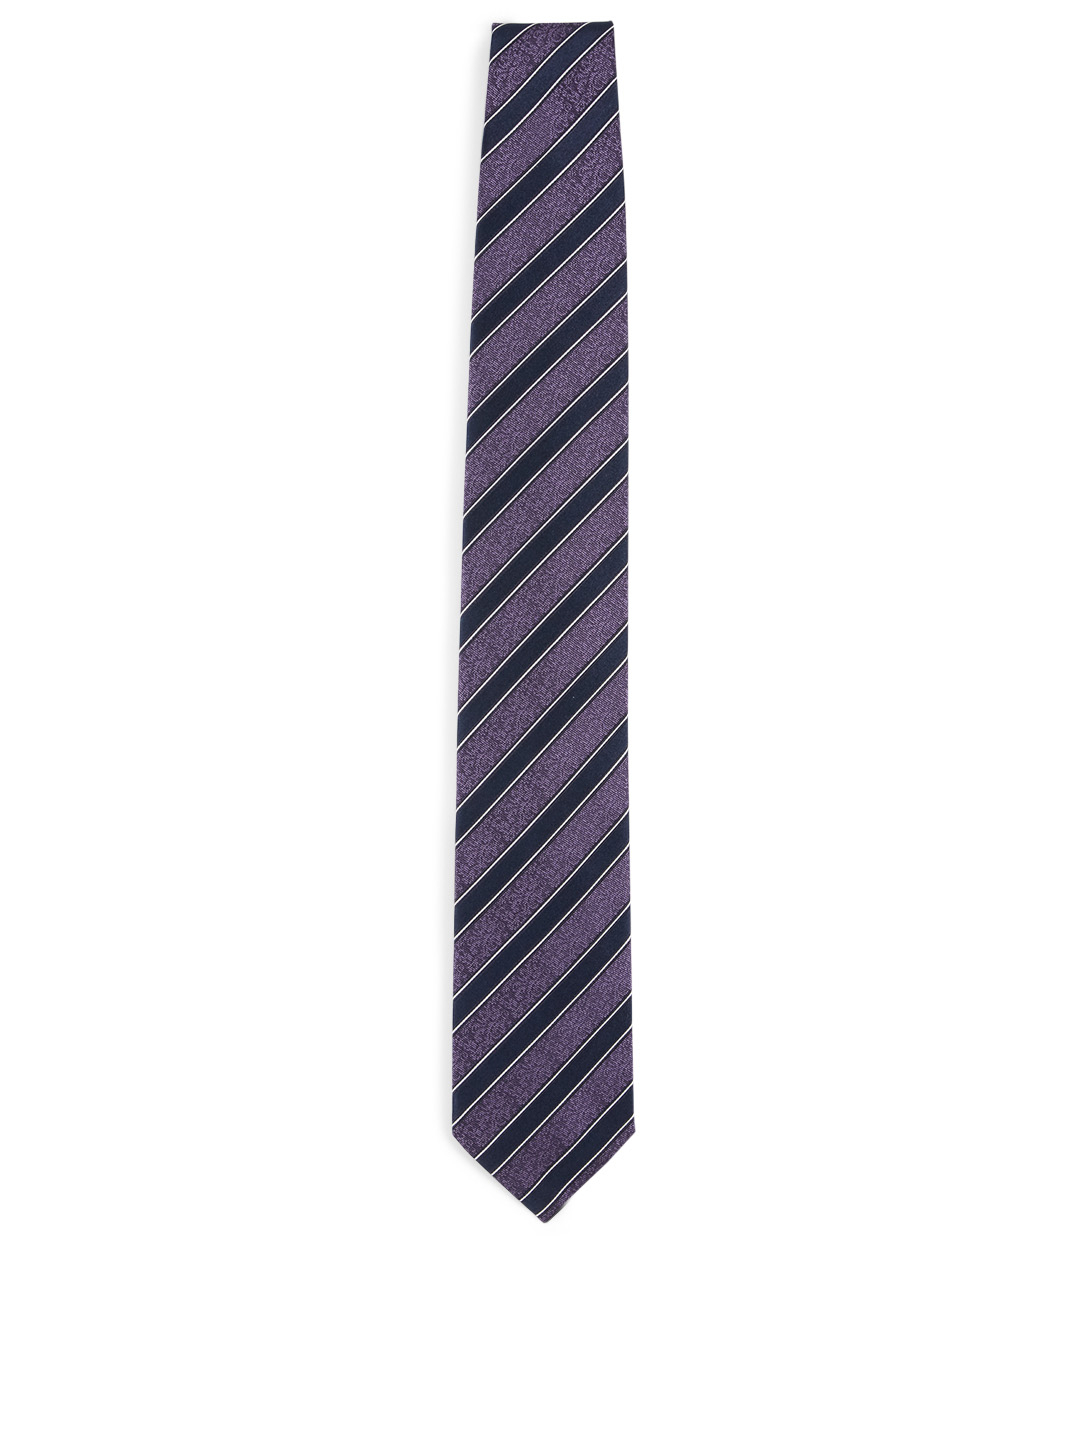 ERMENEGILDO ZEGNA Striped Silk Tie Men's Purple